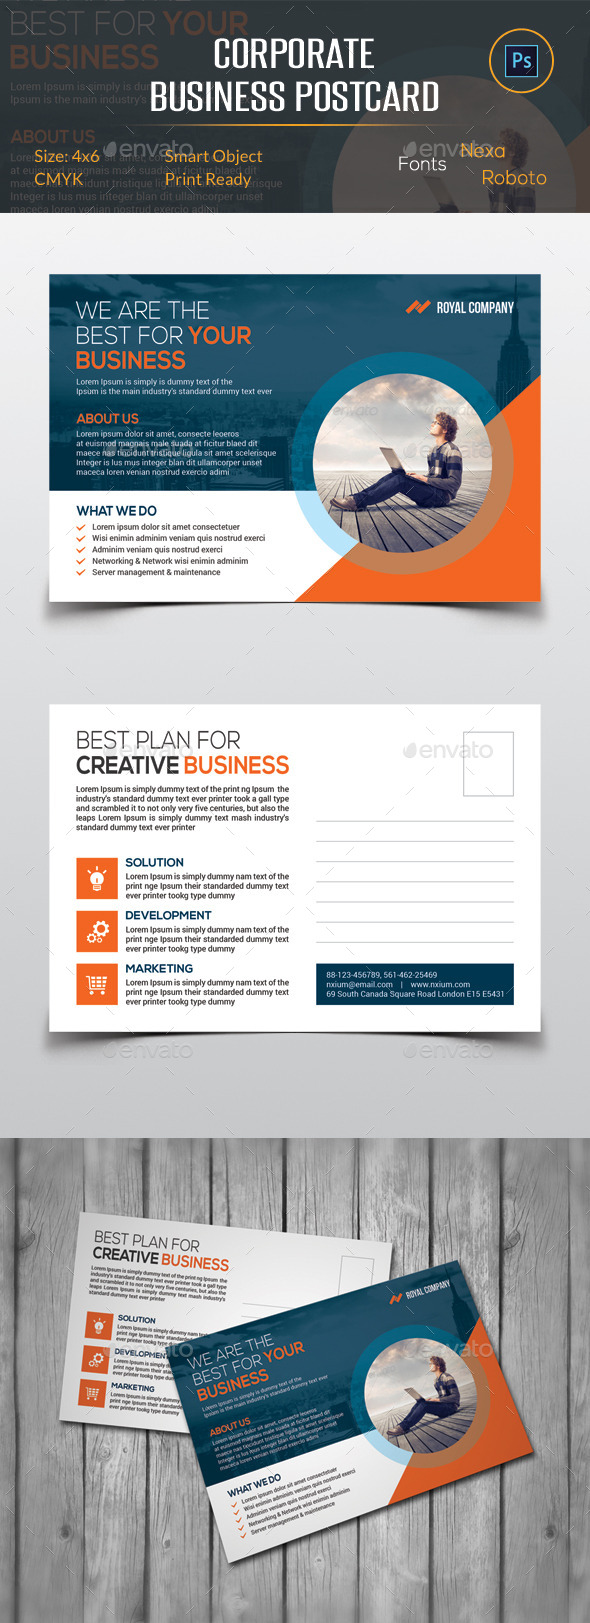 GraphicRiver Corporate Business Postcard 11943934